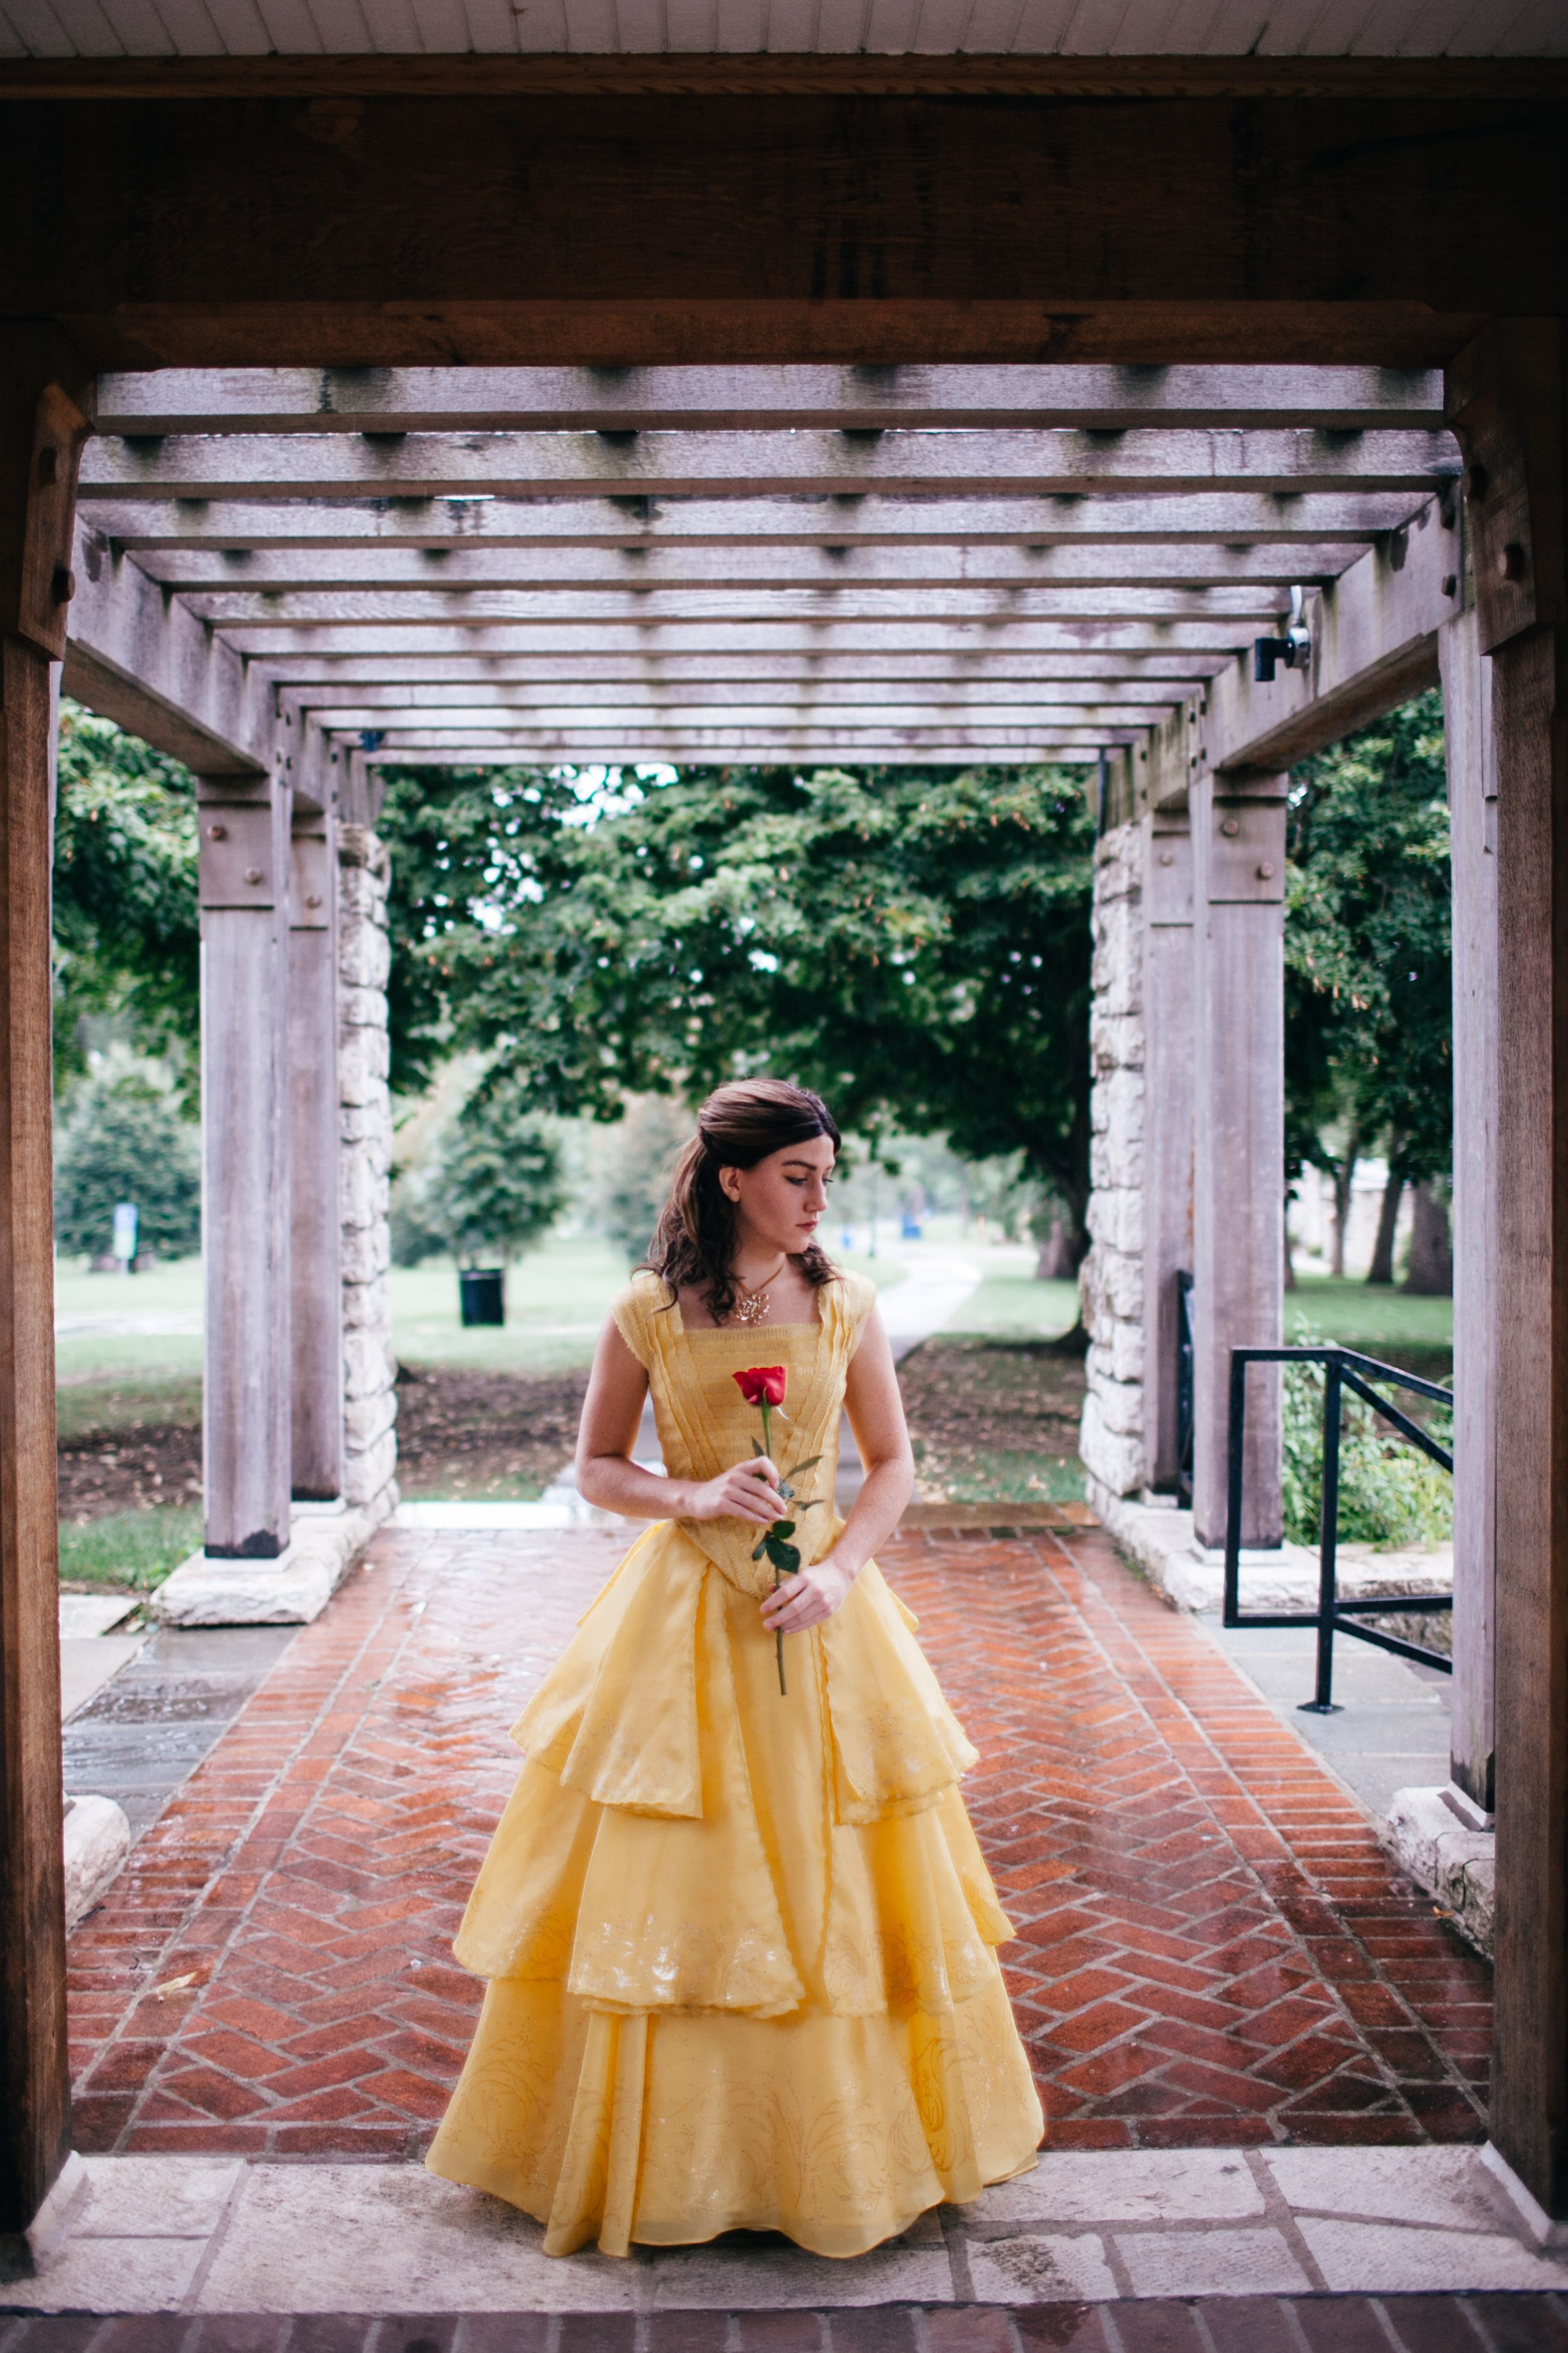 Belle Disney Dress Beauty And The Beast 2017 Live Action Movie